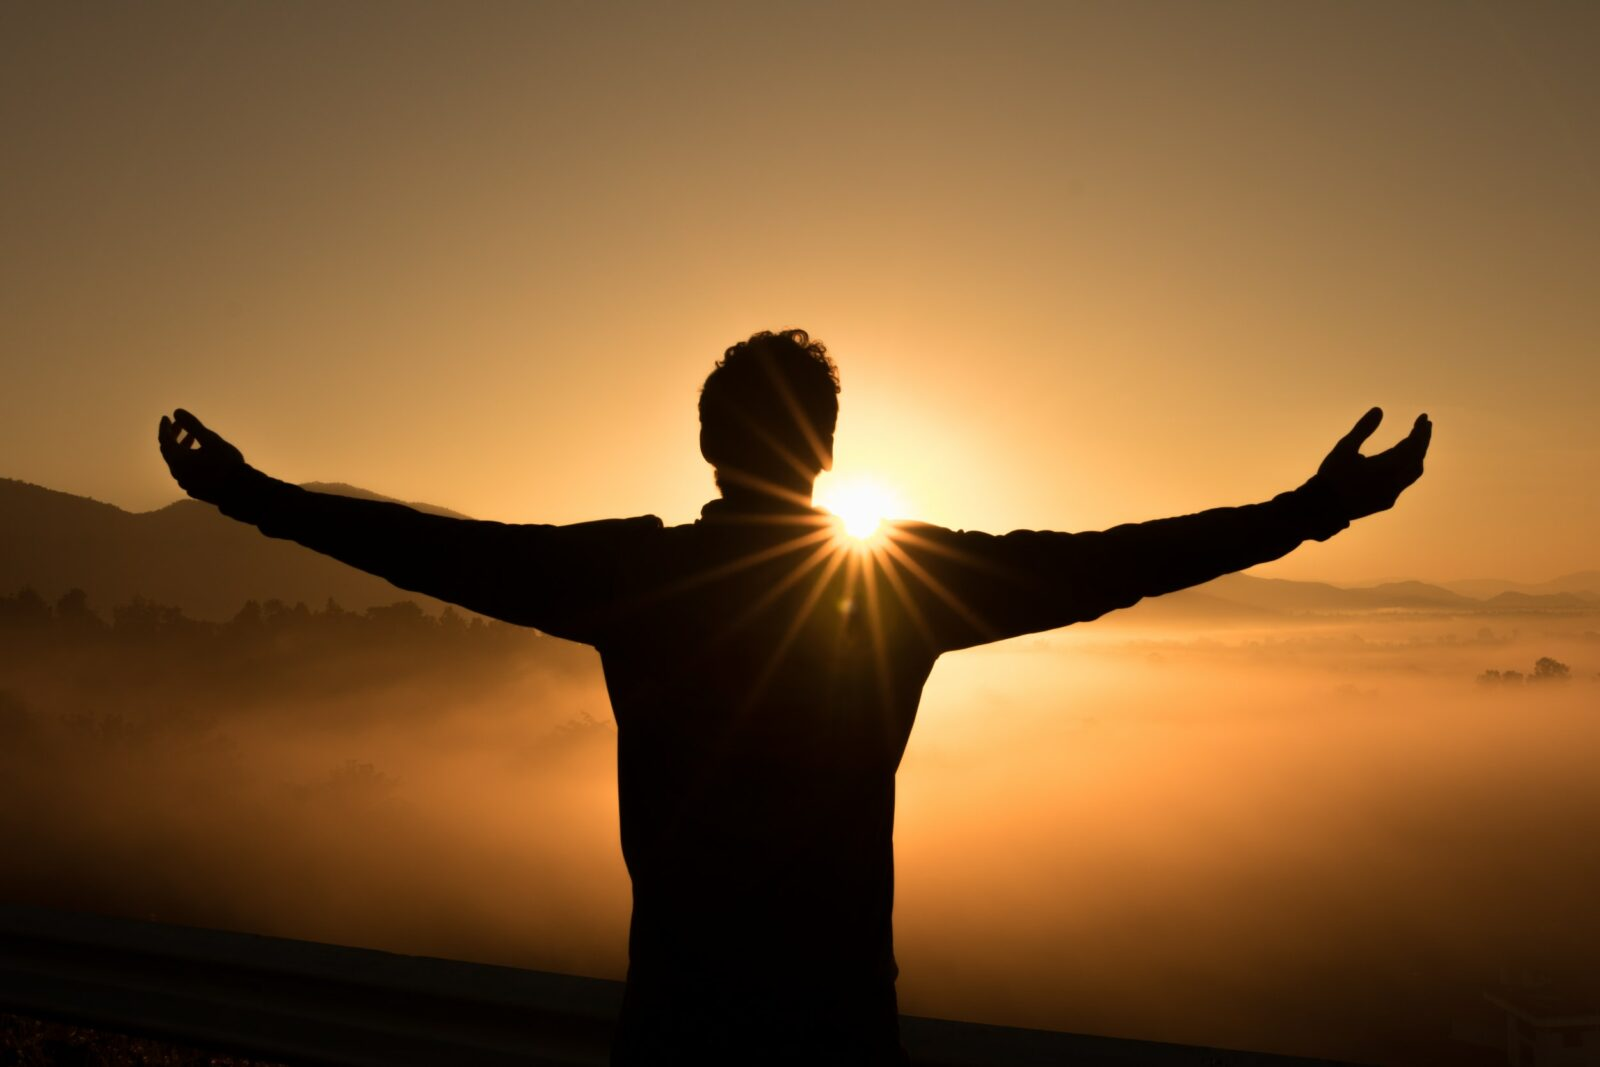 Someone standing in front of a sunrise with their arms outstretched